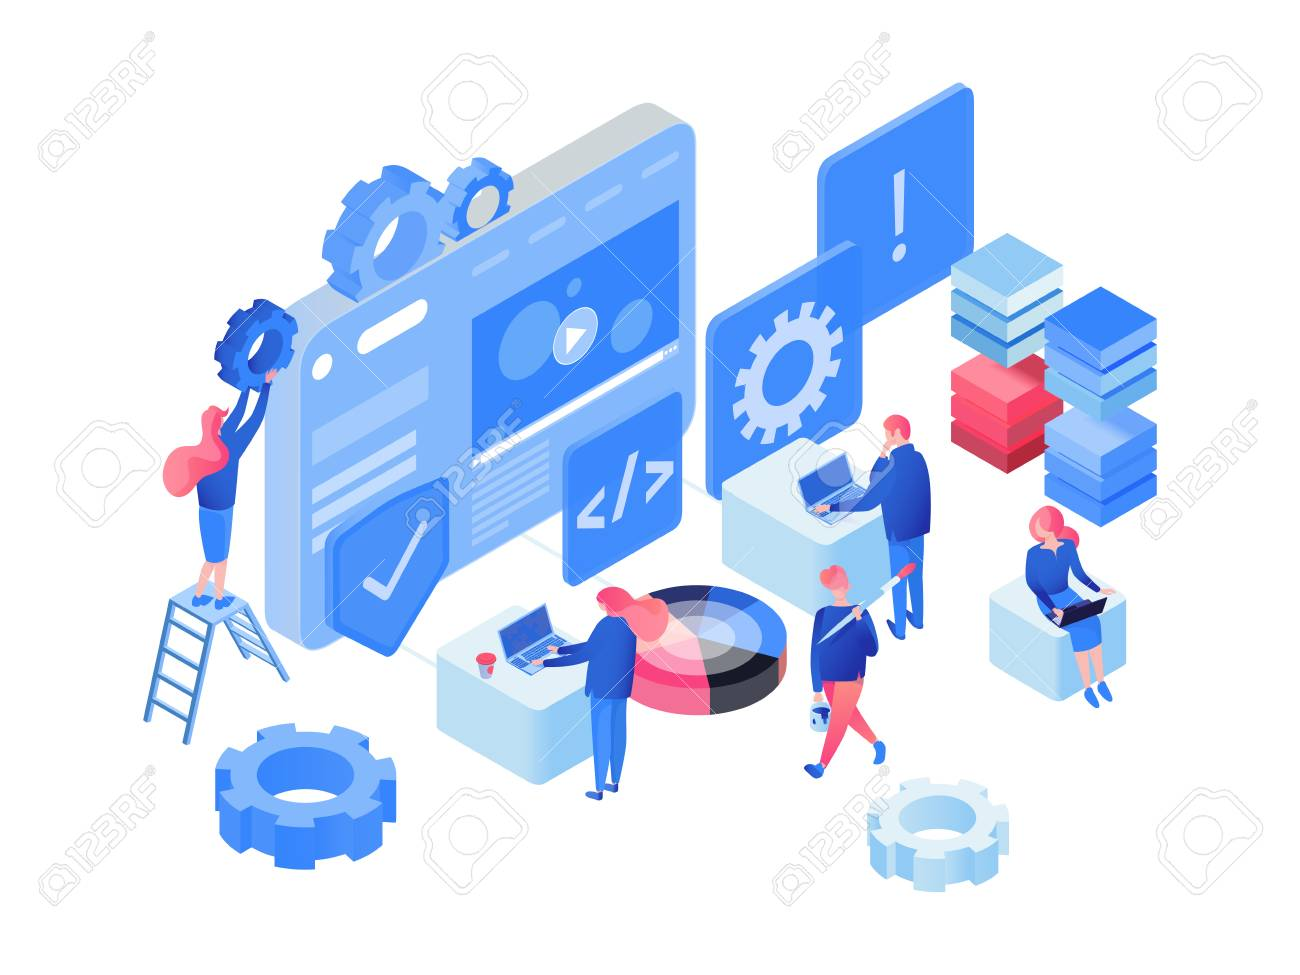 Software Web Development Isometric Vector Illustration Programmers Developers Characters Coding Team Working Collaborating 3d Clipart App Website Optimization Process Isolated Design Element Royalty Free Cliparts Vectors And Stock Illustration